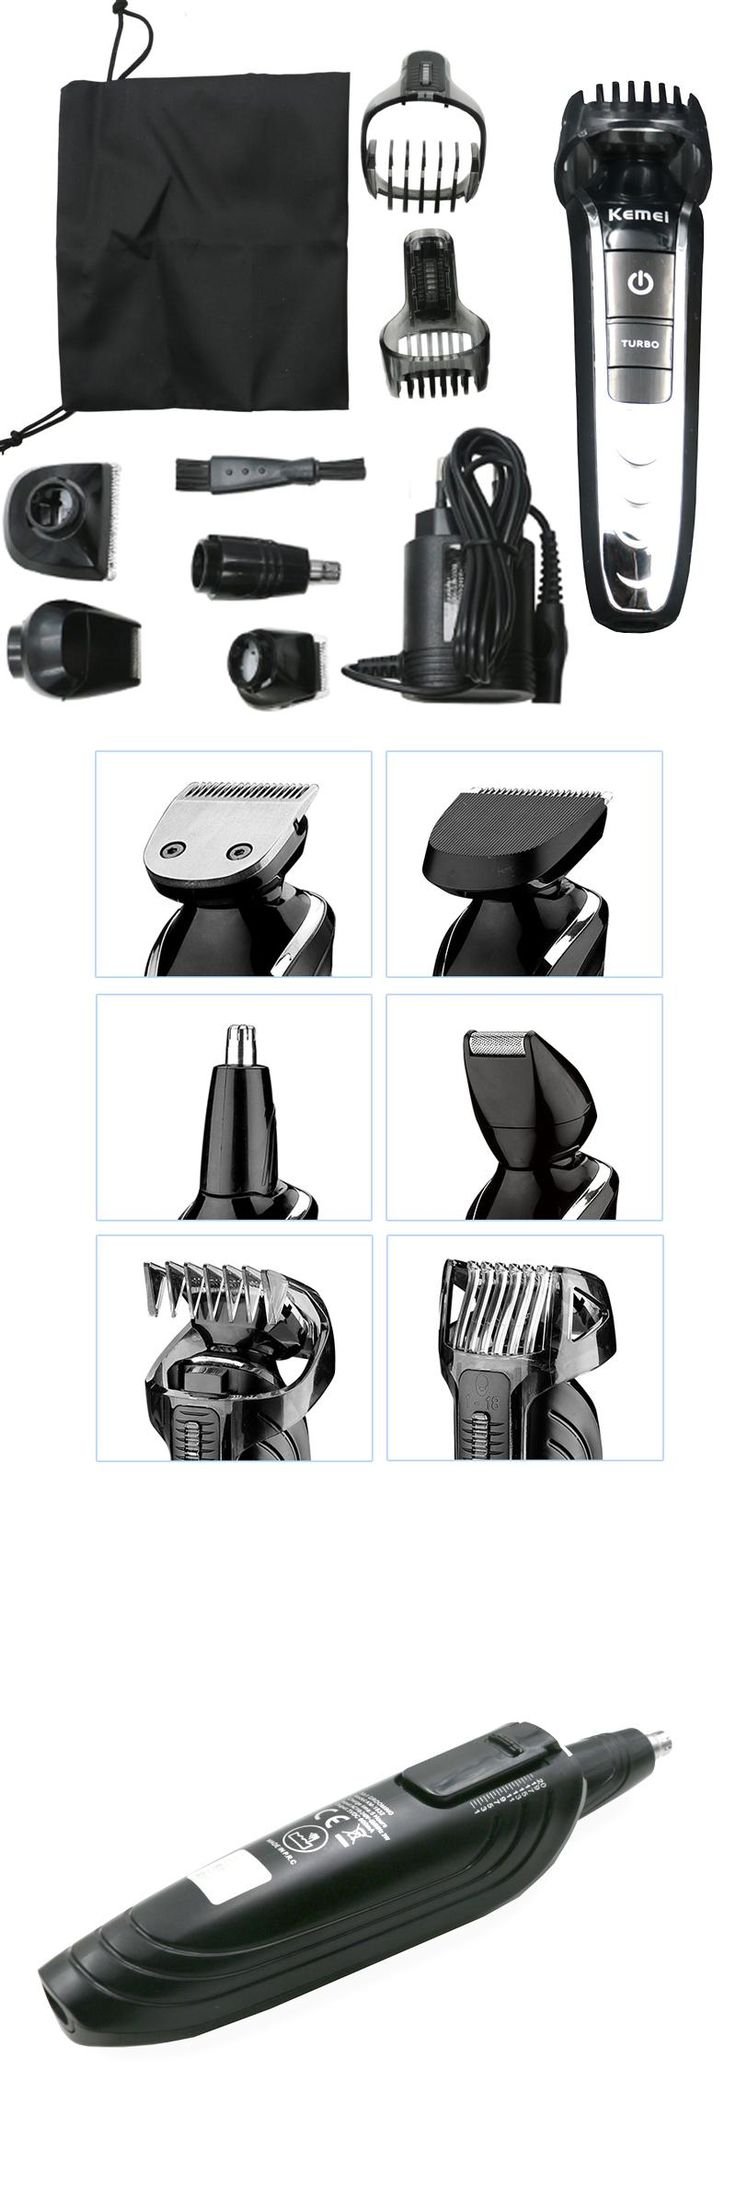 [Visit to Buy] Kemei 5 in1 Rechargeable Waterproof Trimmer Hair Clipper Trimer Shaver Beard Nose for Men Family Use High Quality #Advertisement